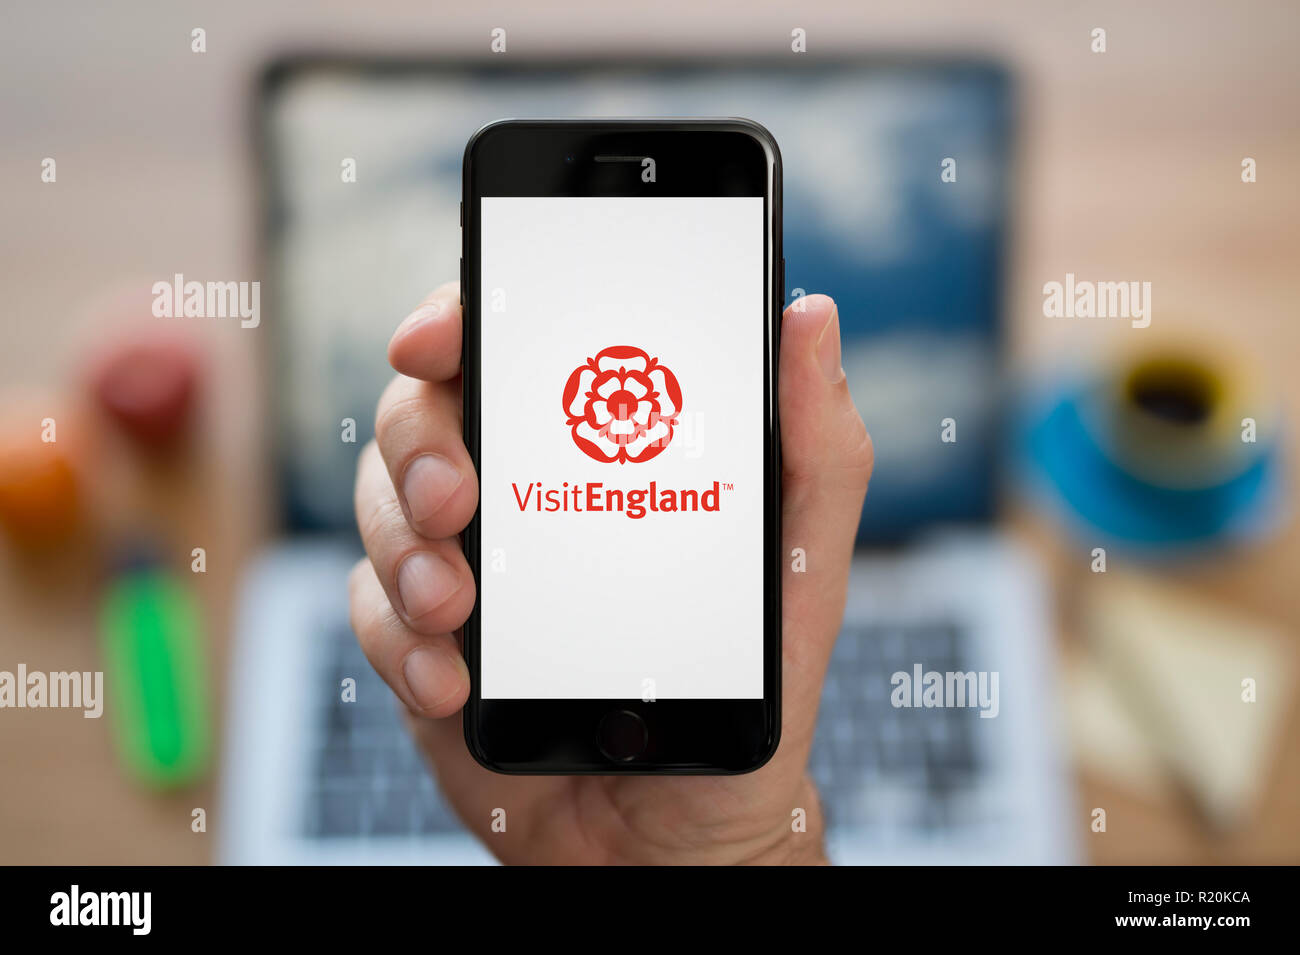 A man looks at his iPhone which displays the Visit England logo, while sat at his computer desk (Editorial use only). - Stock Image